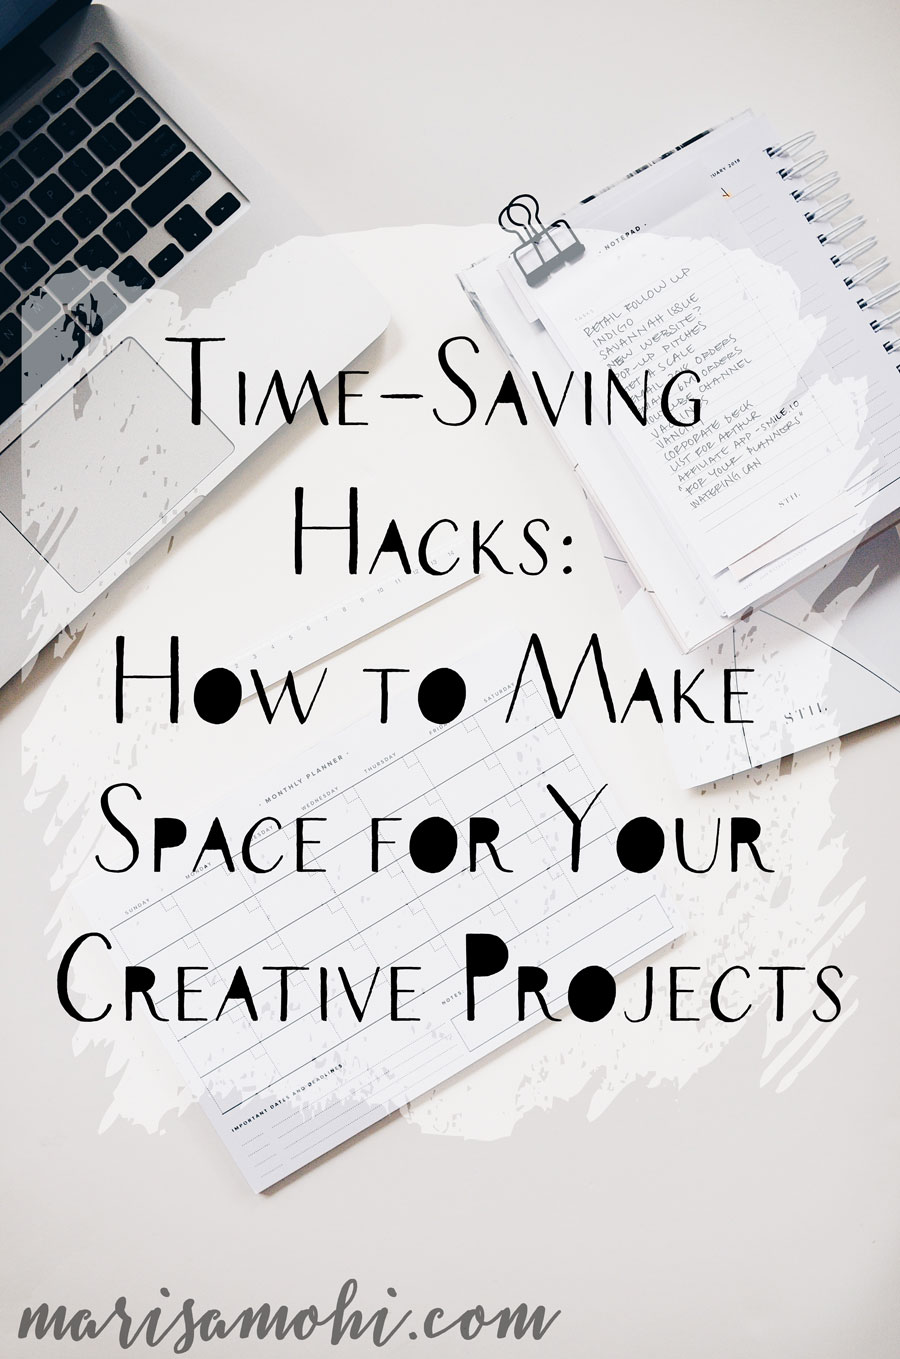 Time-Saving Hacks: How to Make Space for Your Creative Projects